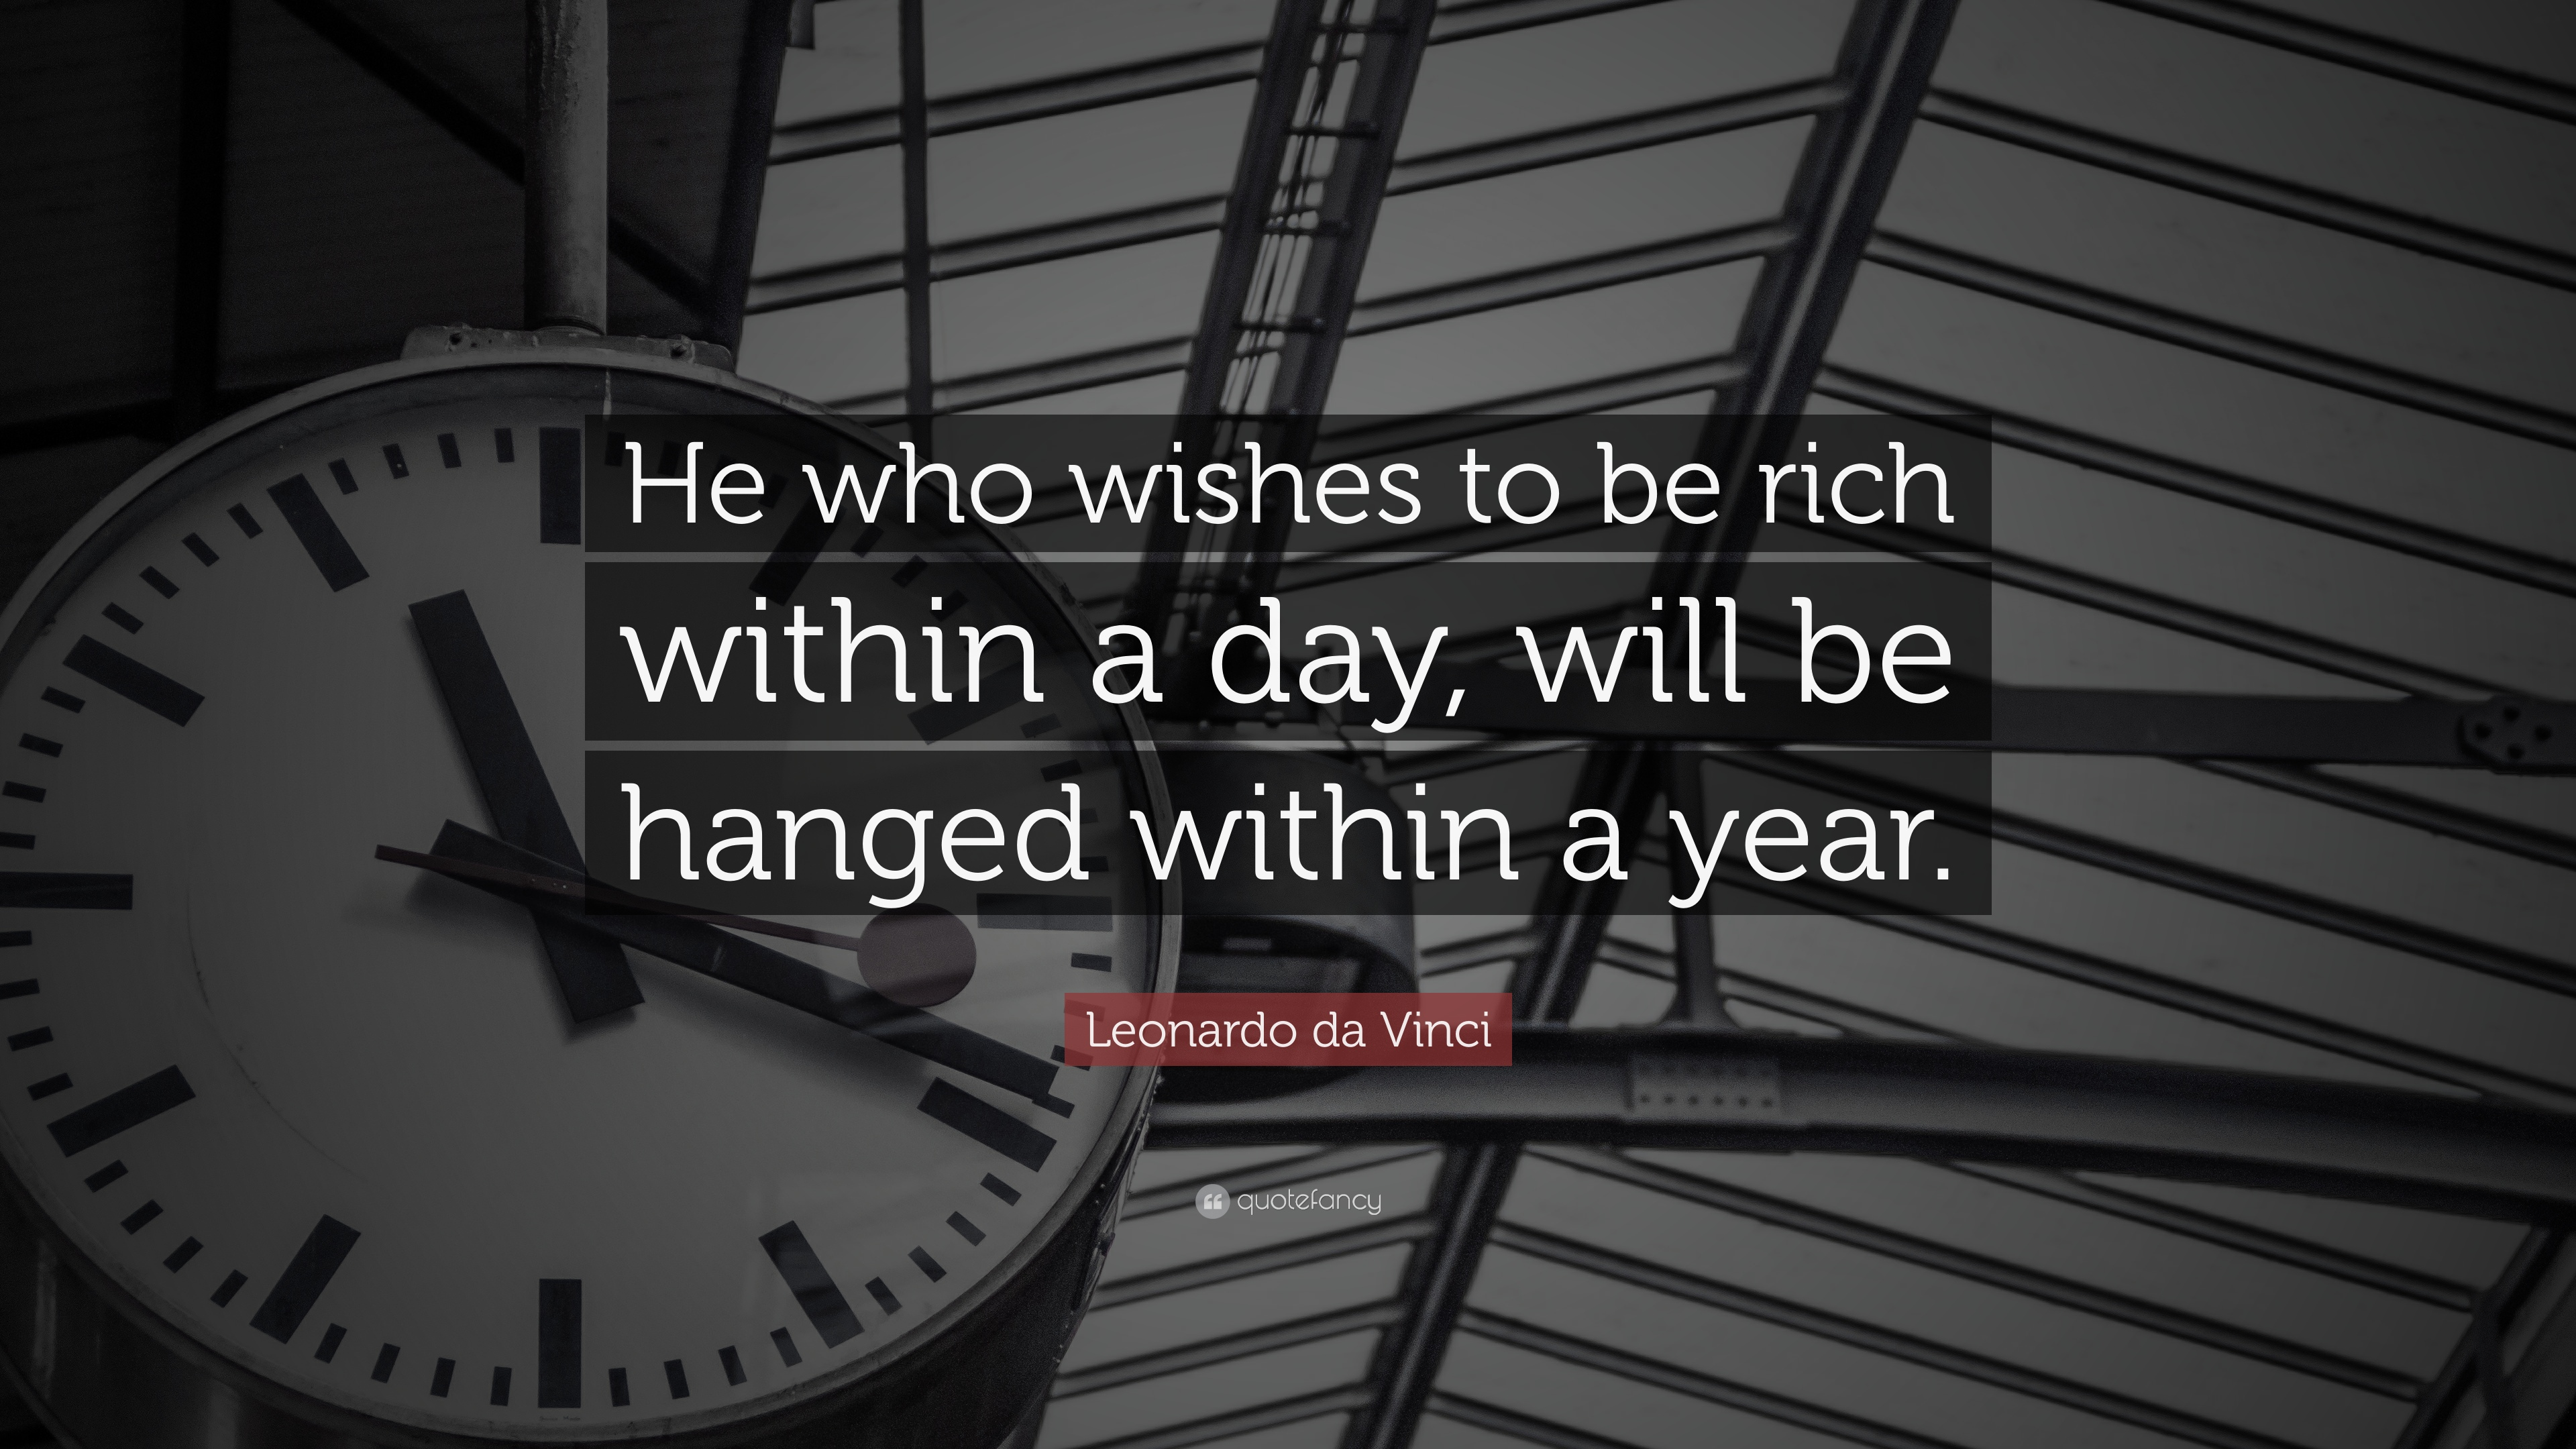 leonardo da vinci quote he who wishes to be rich within a day